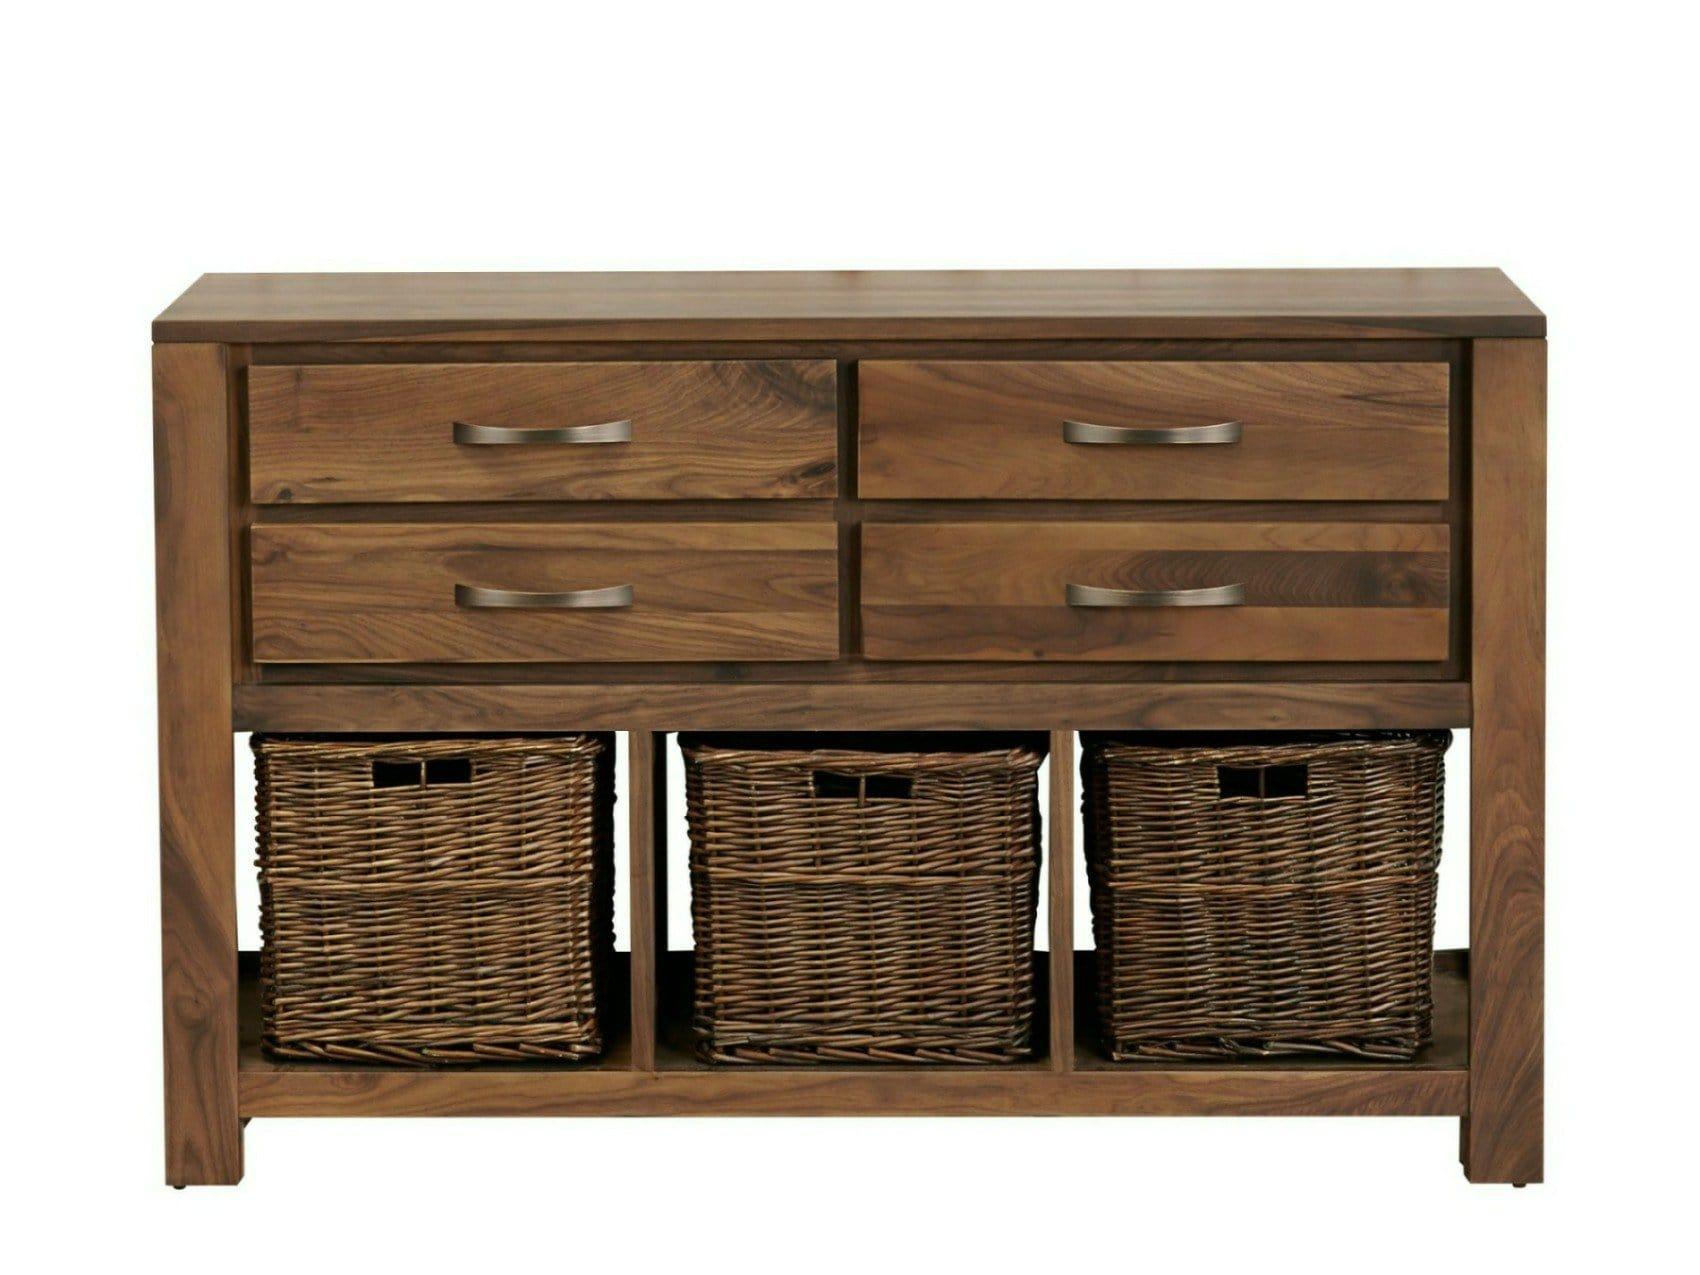 Solid walnut console table with four drawers and three storage baskets